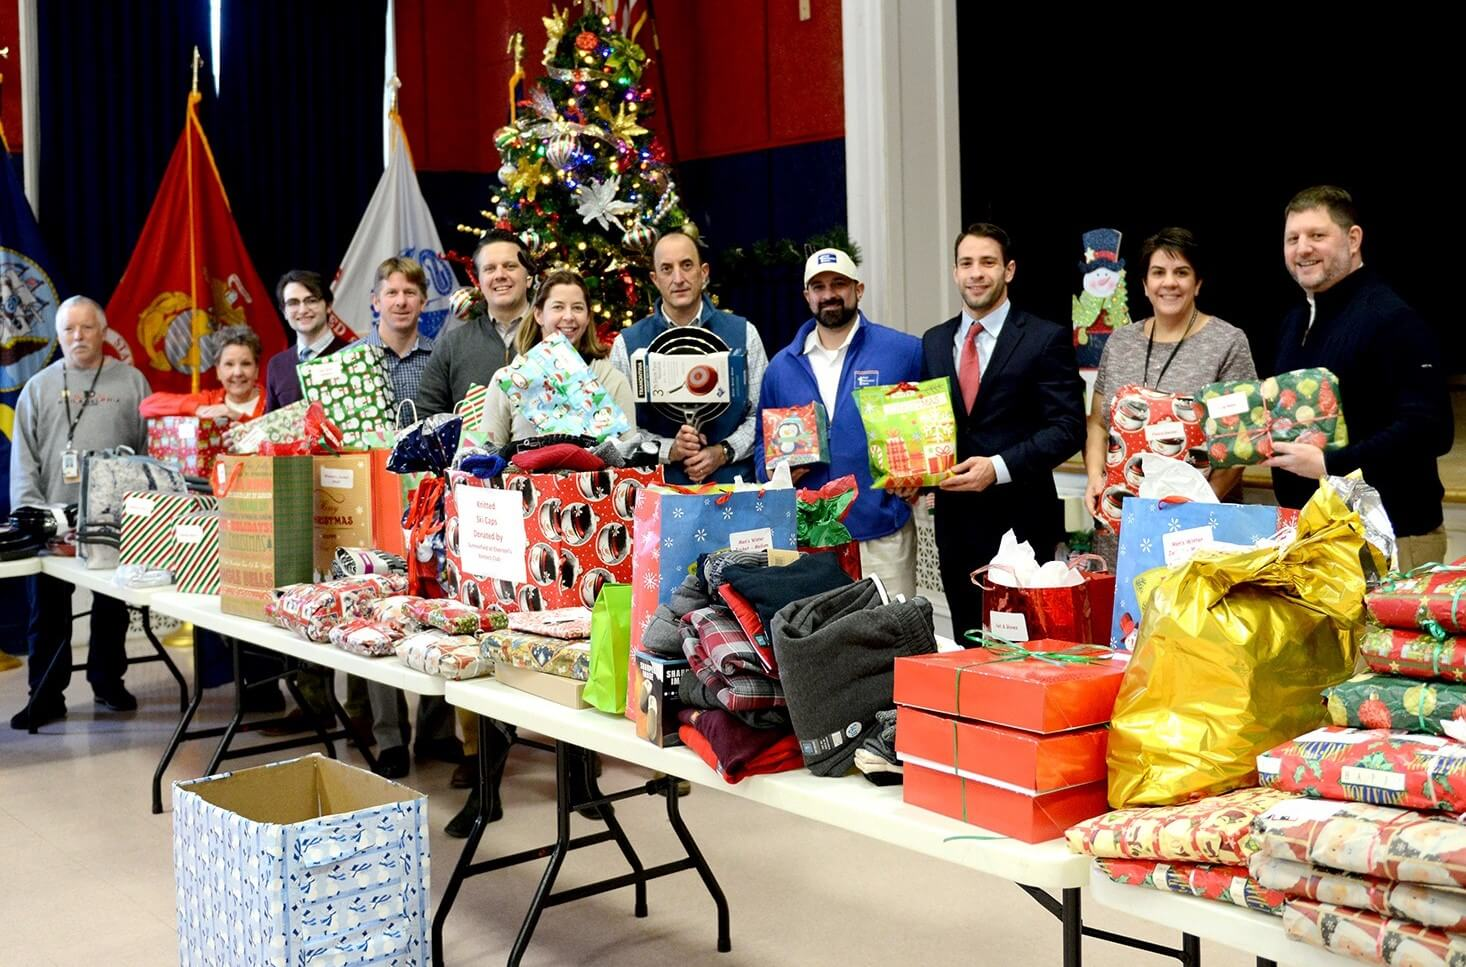 With Support from First Resource Bank, TMACC Delivers Hundreds of Gifts to Coatesville VA